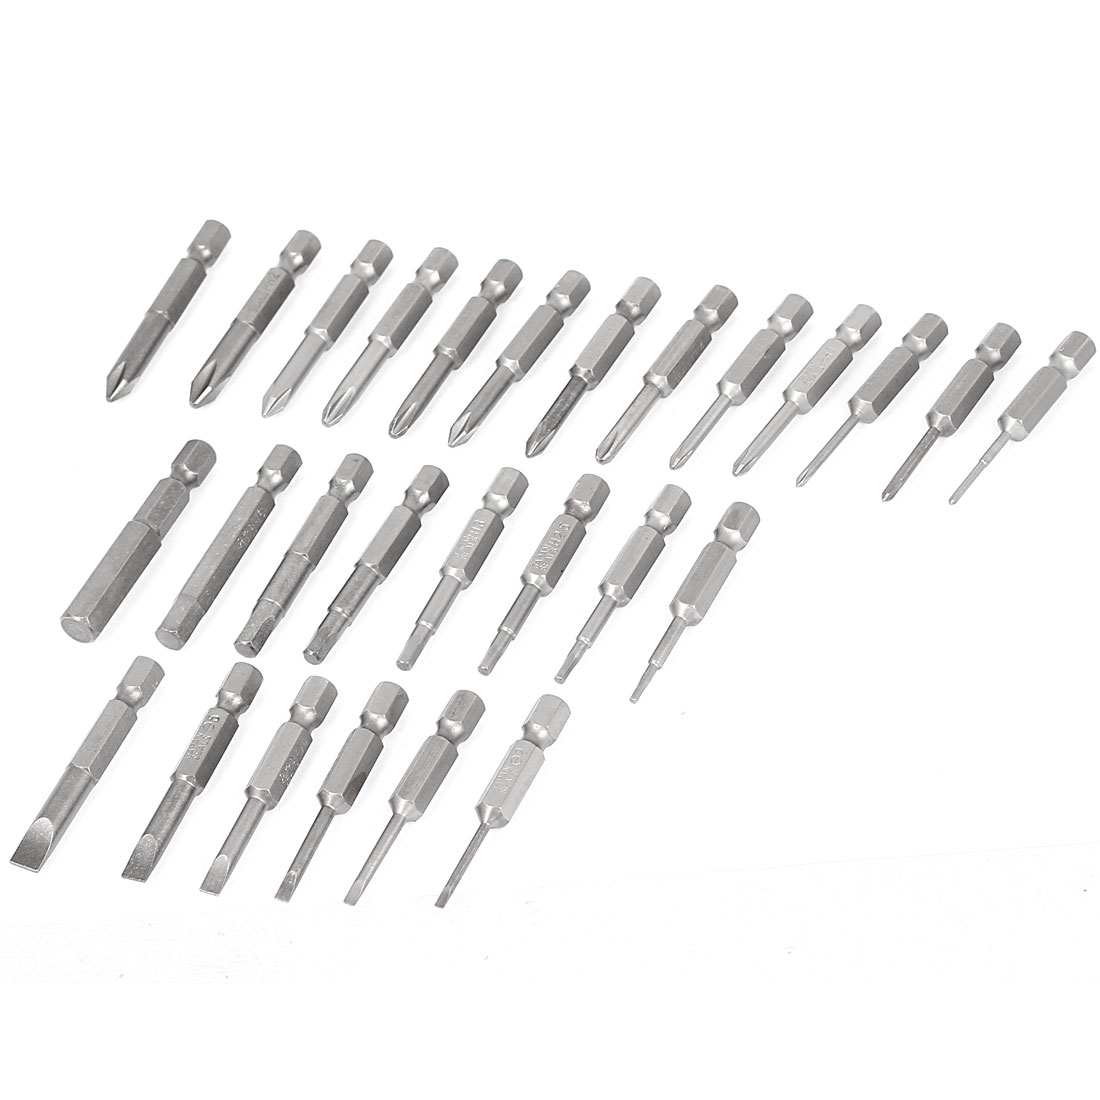 50mm Length Magnetic Phillips Slotted Hex Head Screwdriver Bits Set 27 In 1